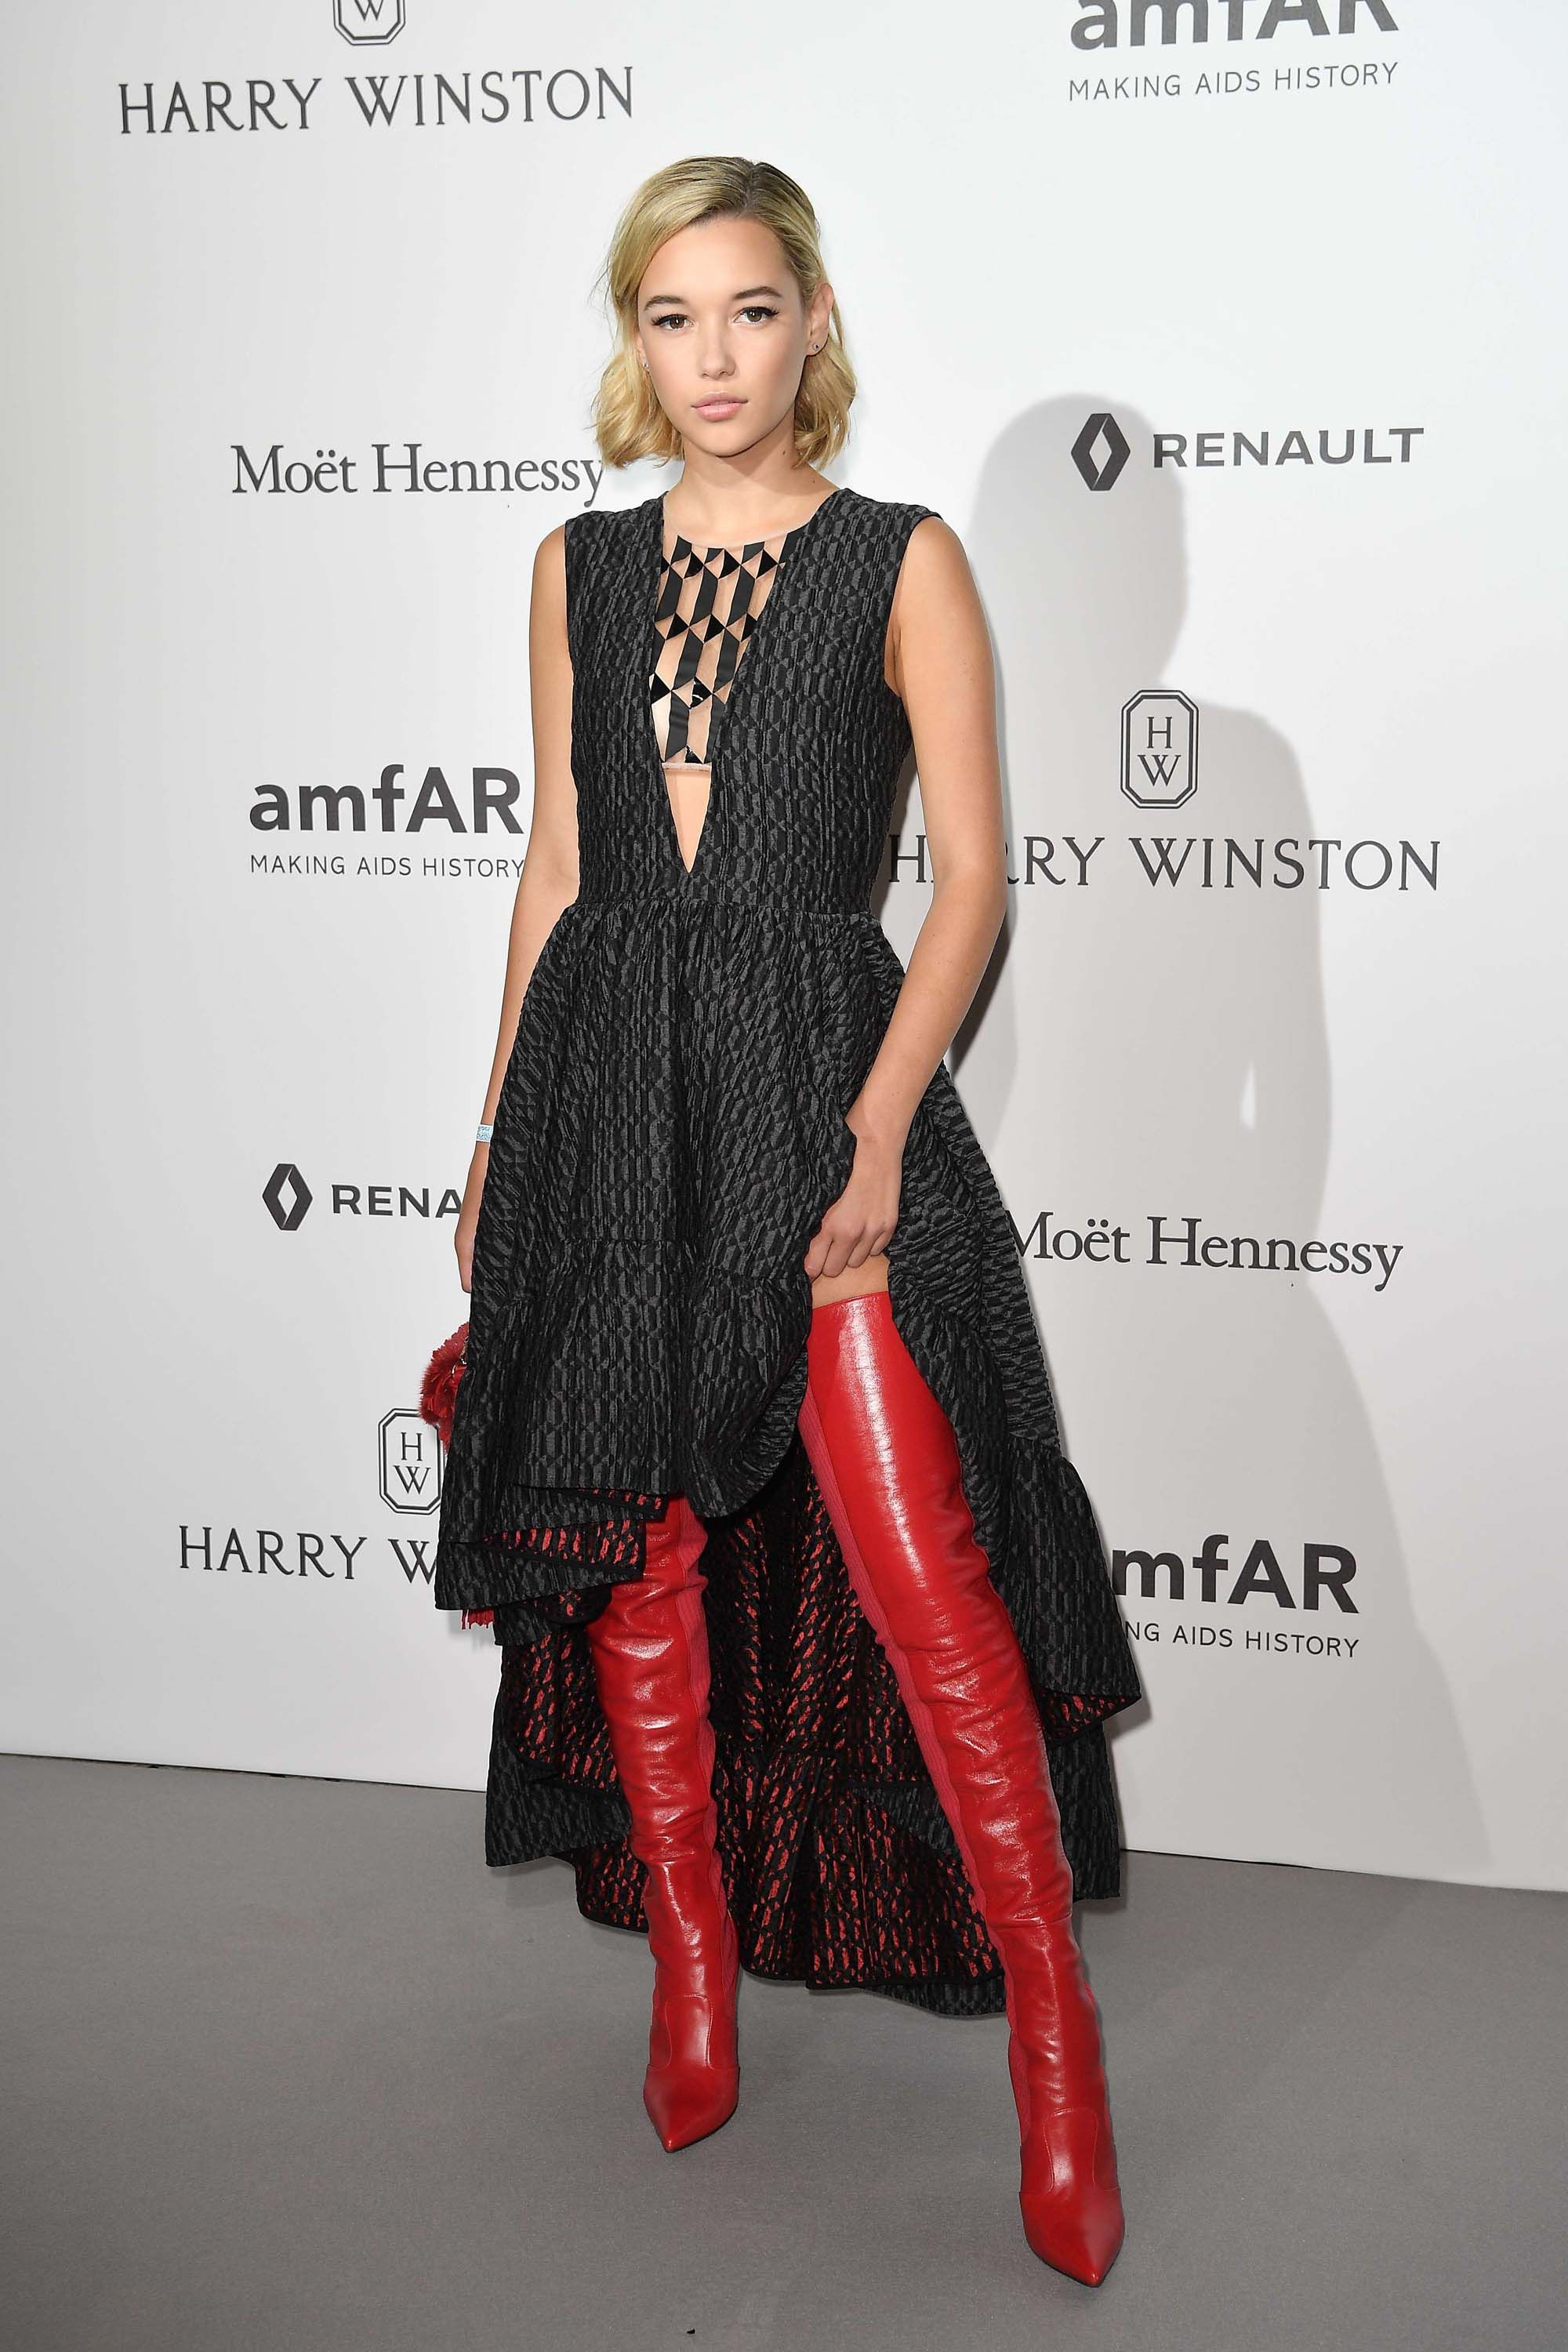 46b4564f997 Sarah Snyder attends amfAR Gala. women s fashion and street style. burgandy    wine   red thigh high boots. fall   winter looks.